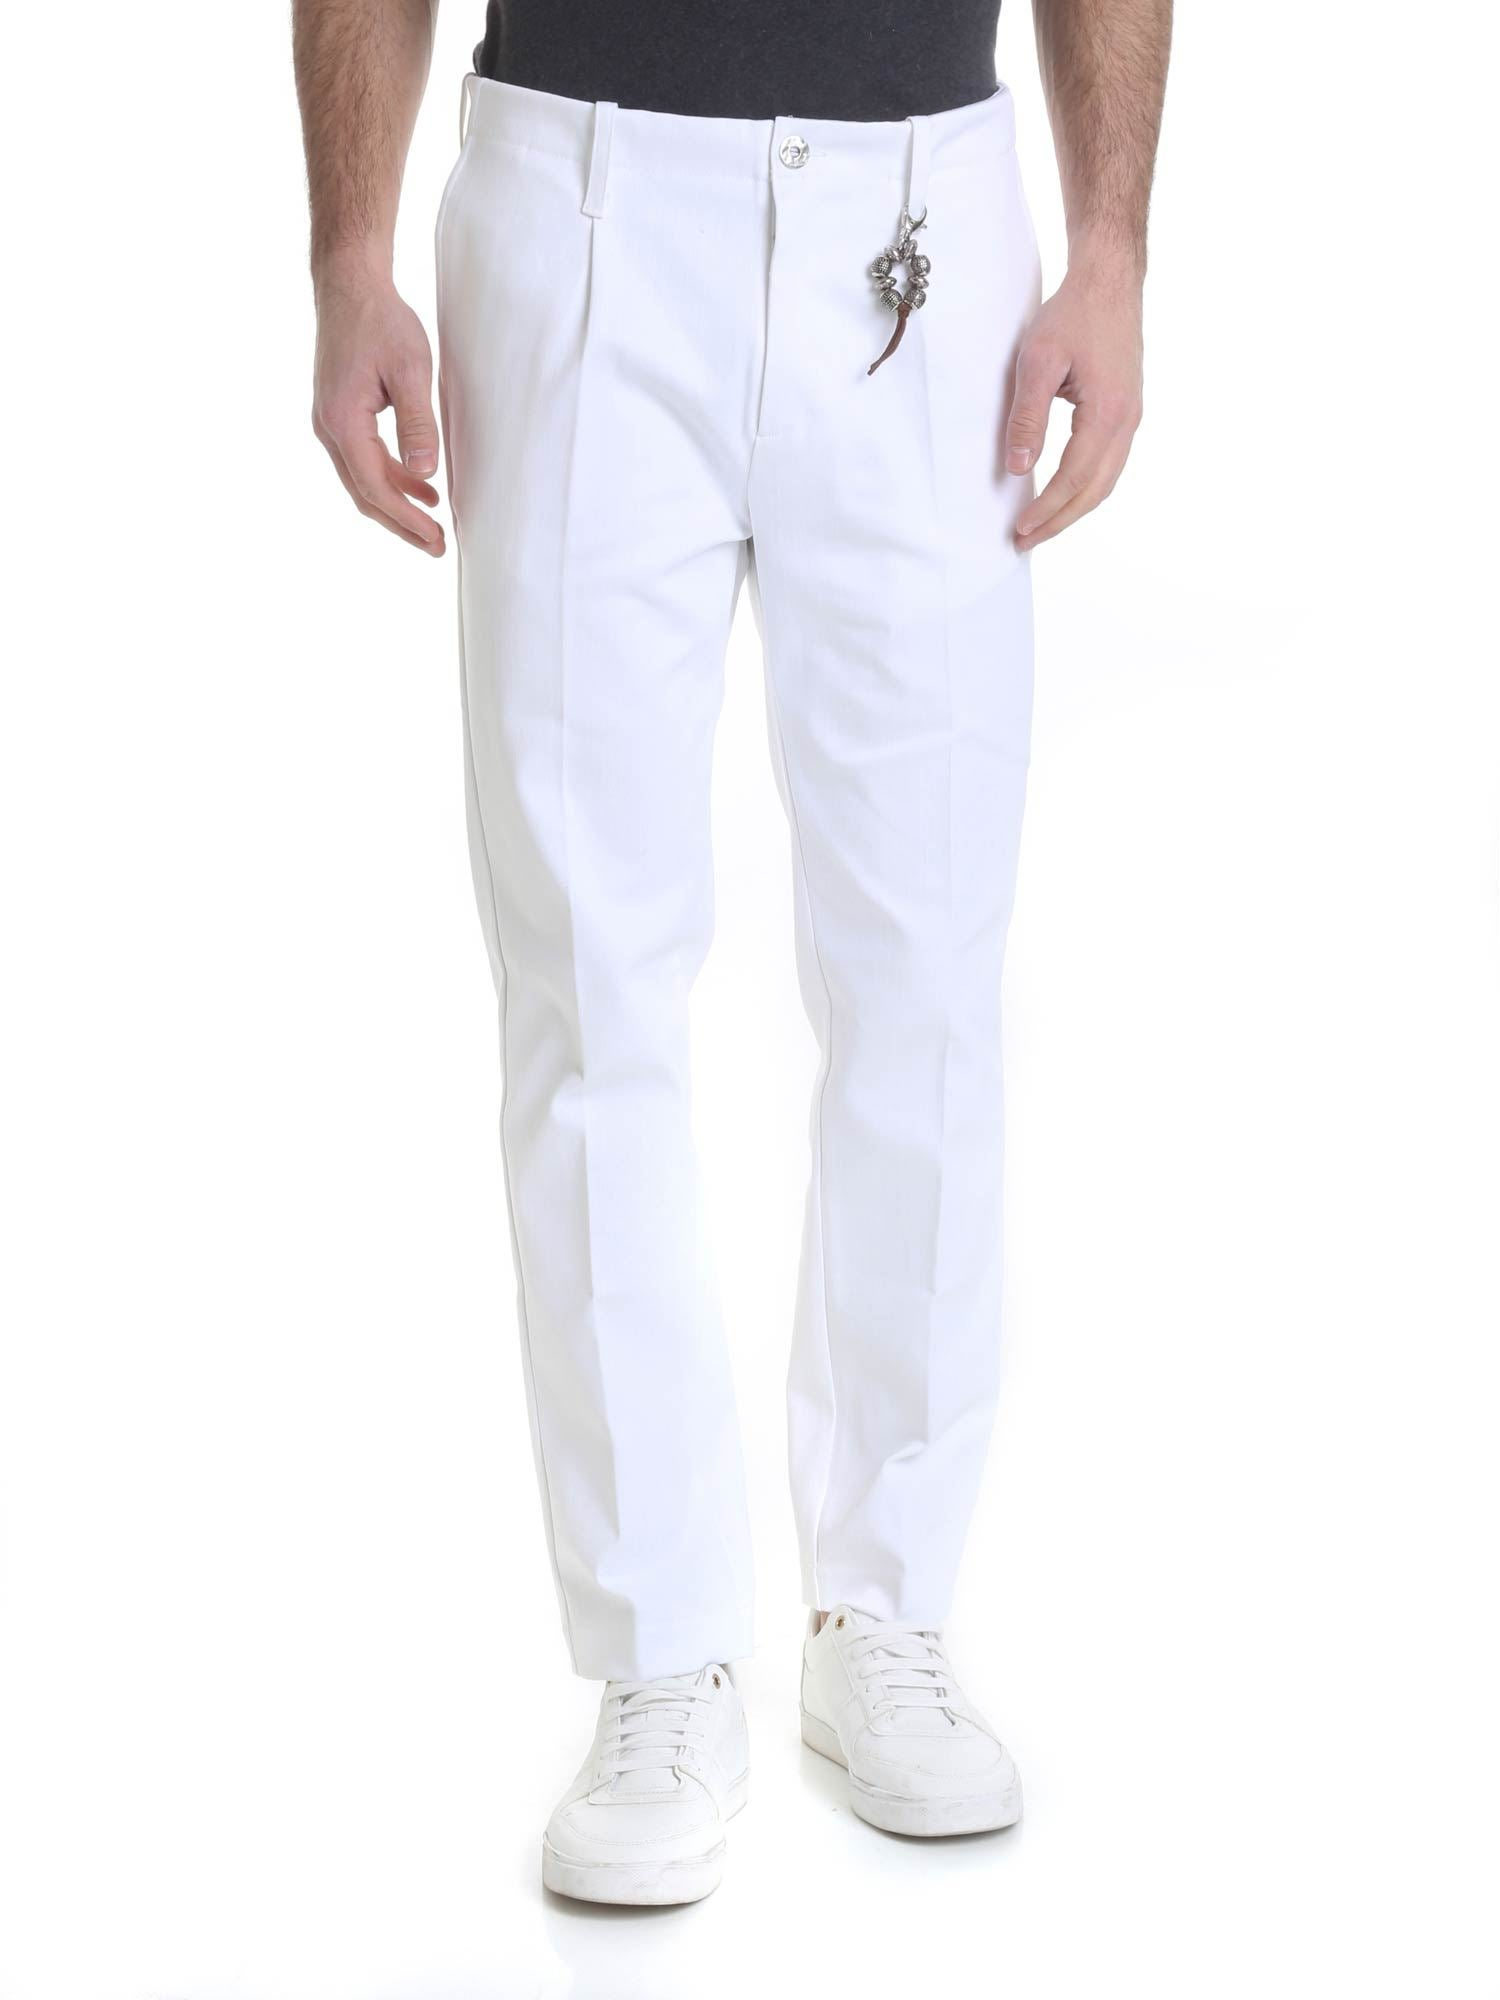 Image of Pantalone in denim bianco con 1 pince R92 D-B